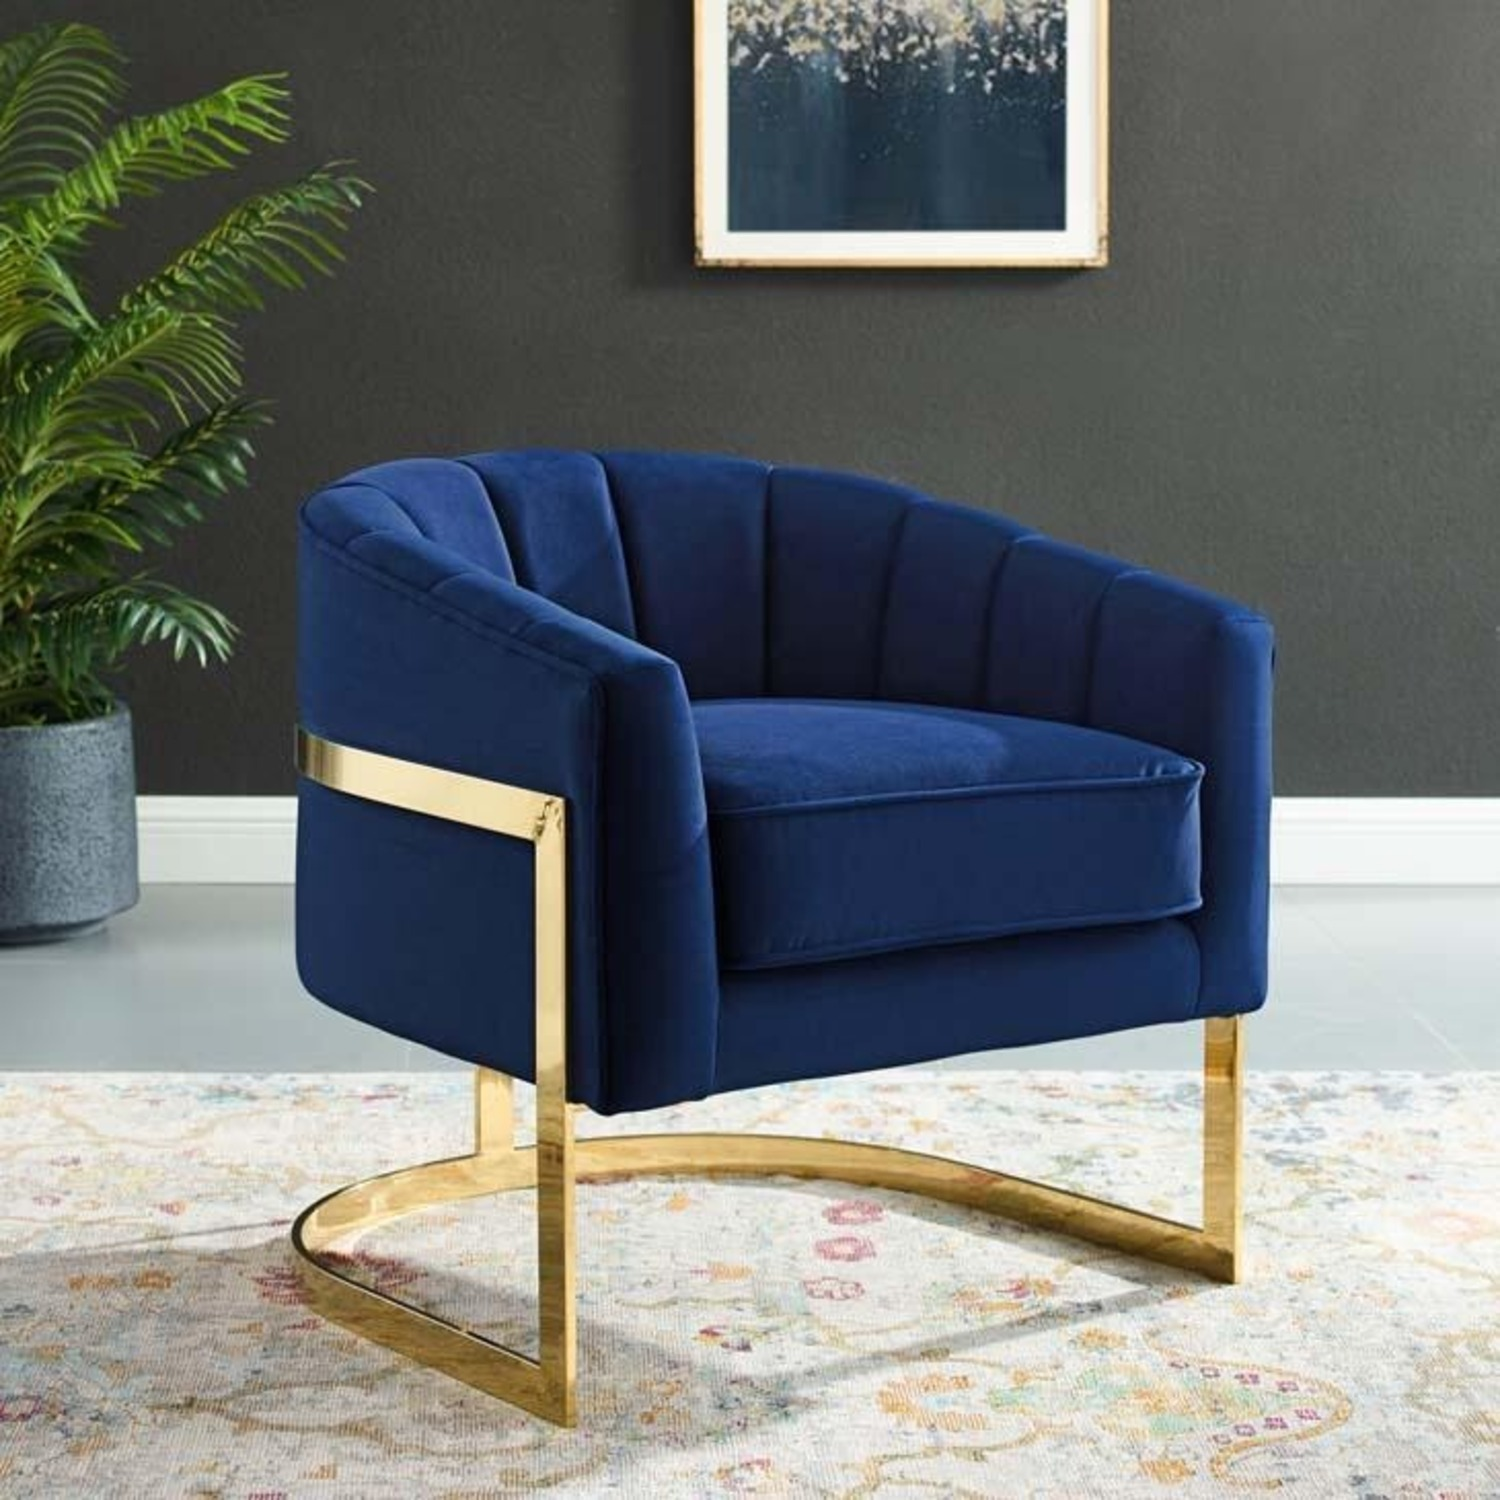 Accent Chair In Navy Velvet W/ Channel Tufting - image-4